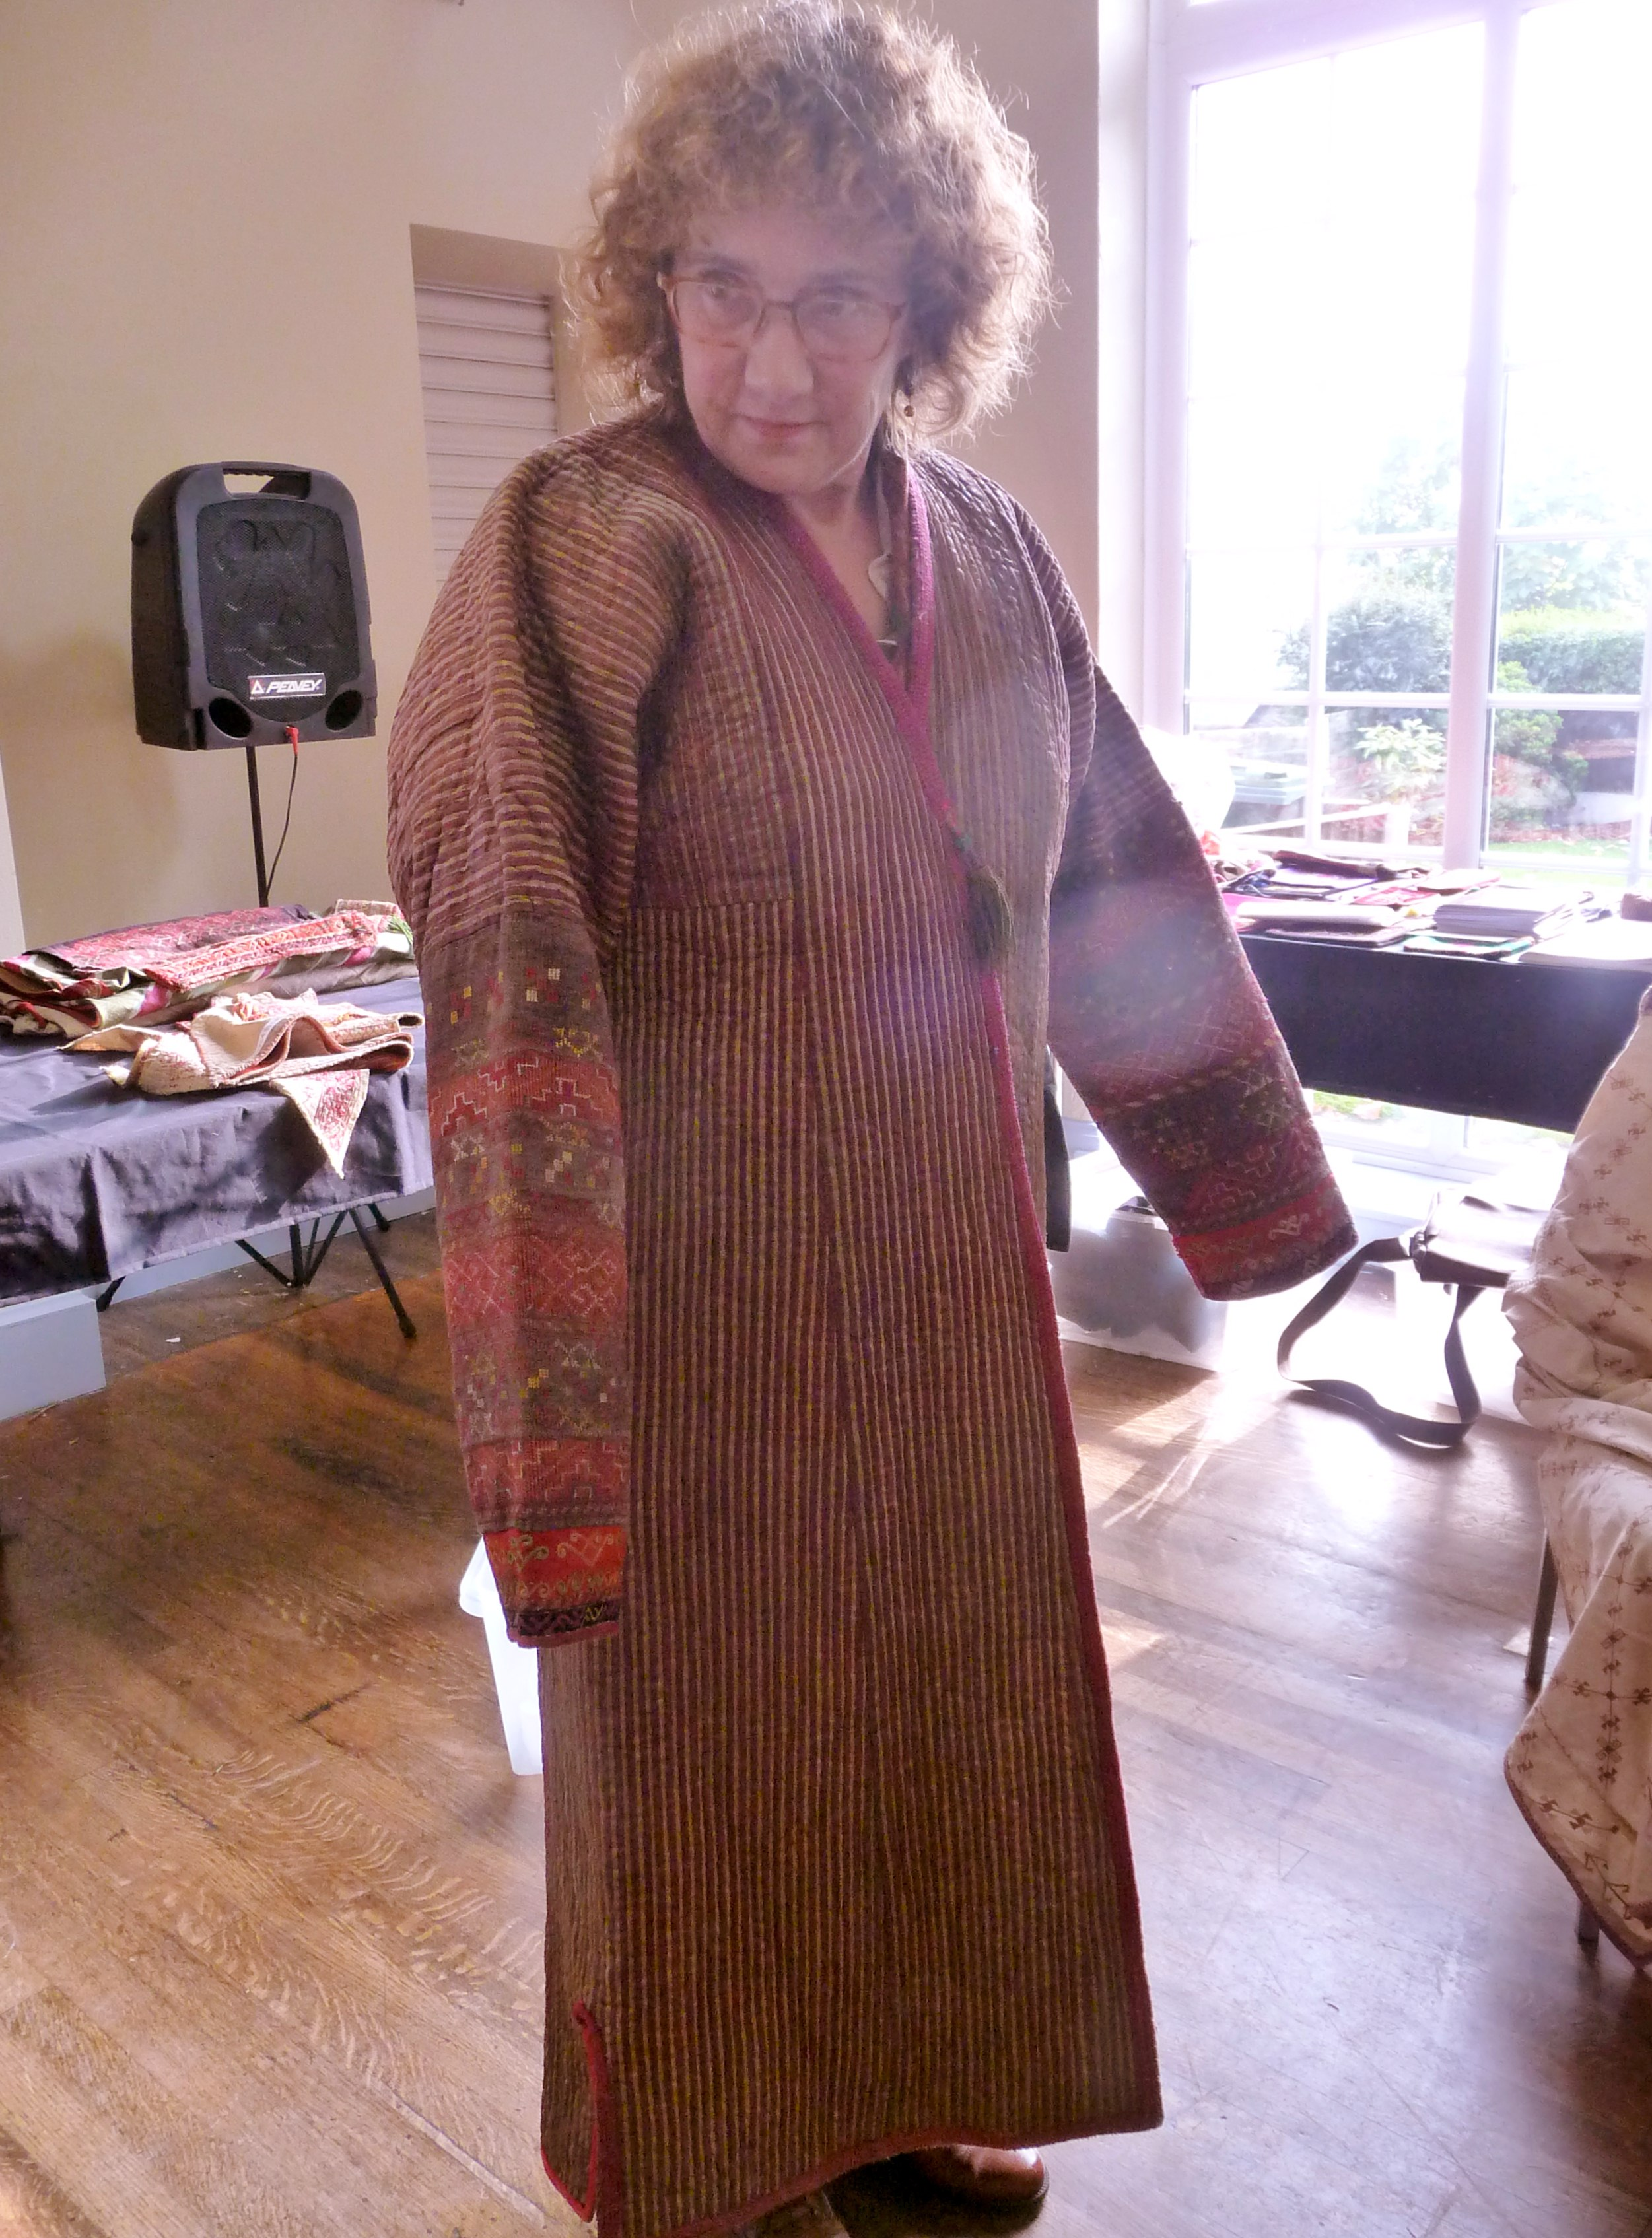 Sue Richardson is wearing a padded embroidered coat made by Qaraqalpaq people. The sleeves are designed to be over long